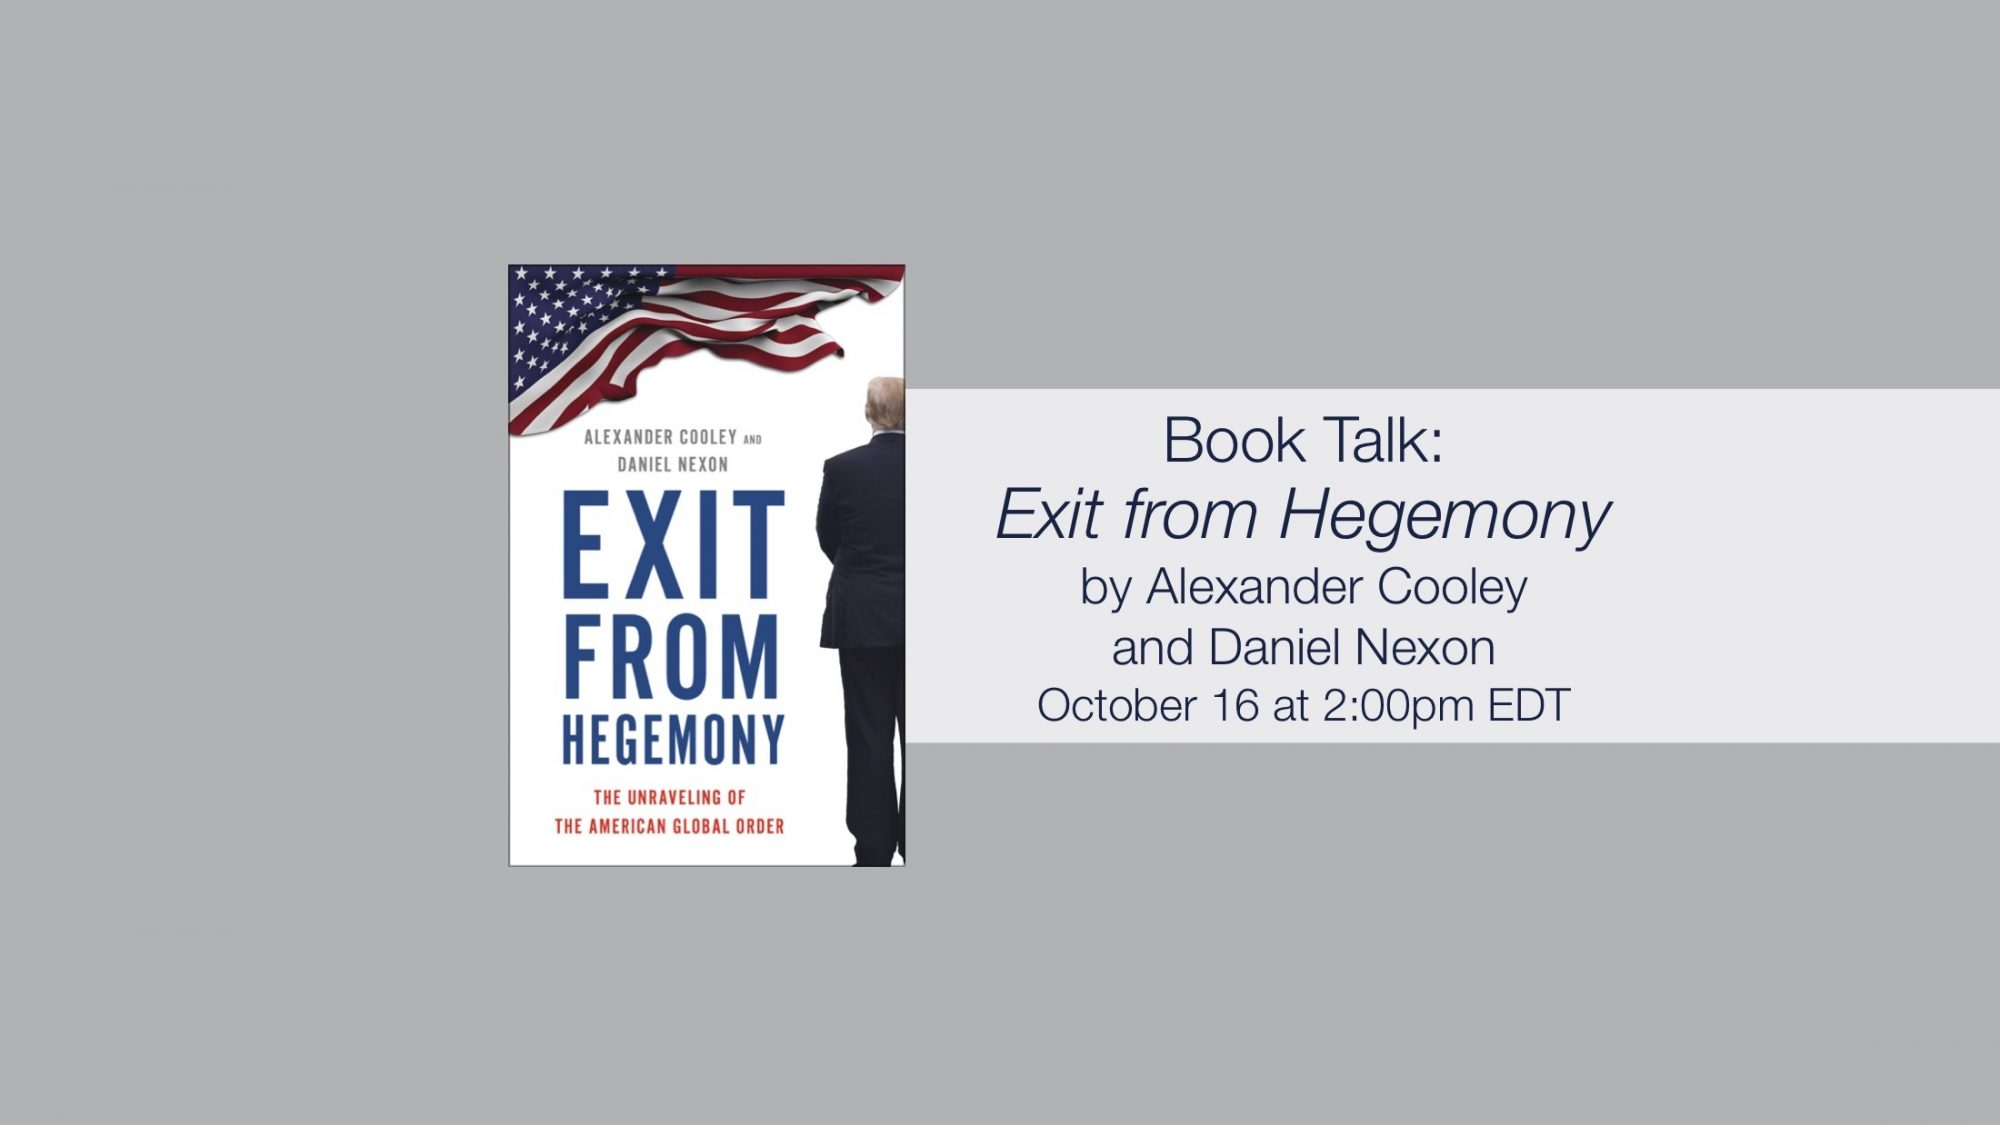 Book Talk: Exit from Hegemony by Alexander Cooley and Daniel Nexon on October 16 at 2pm EDT